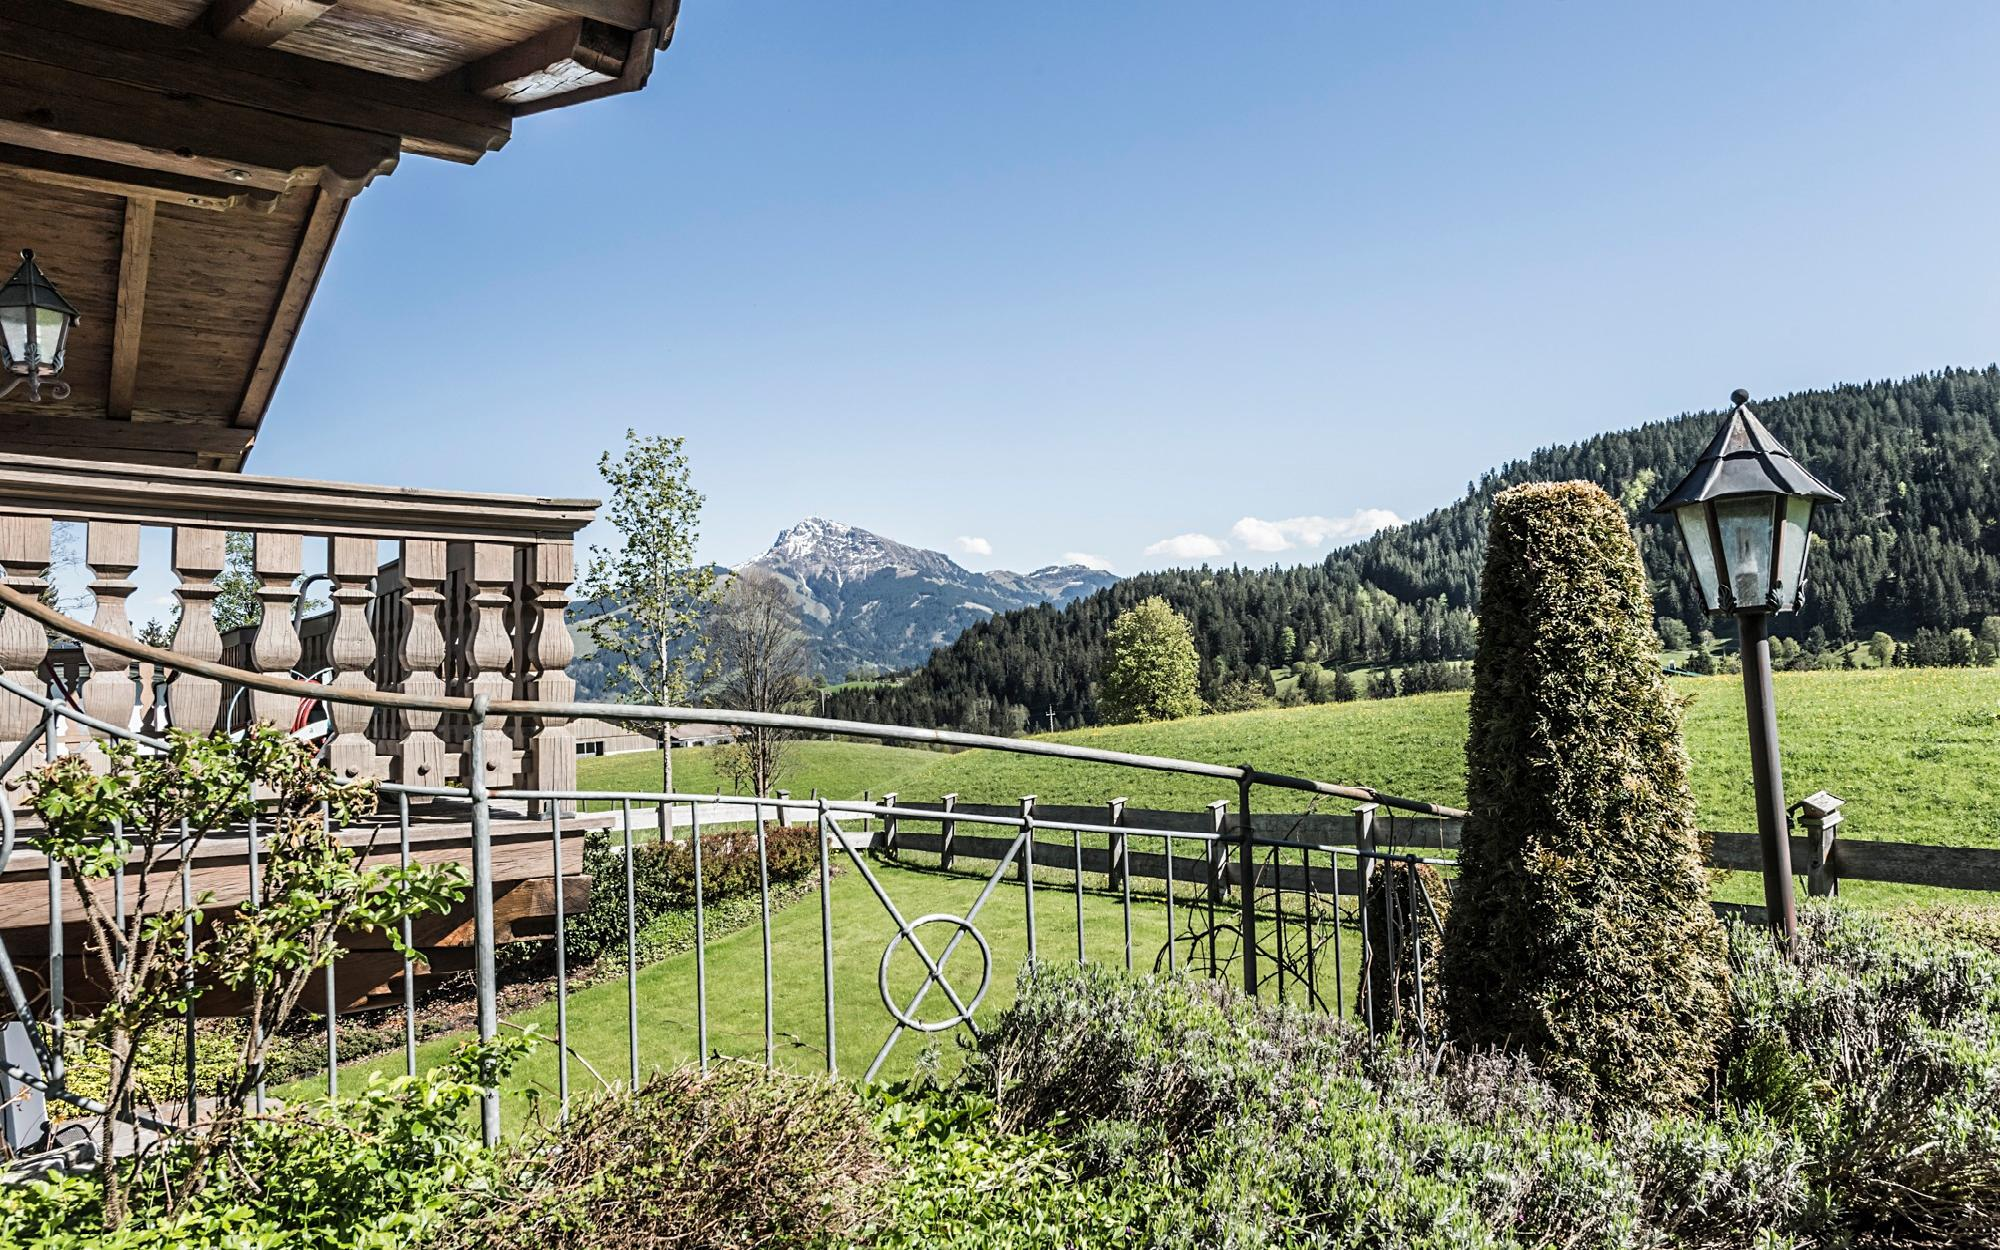 Immobilien - Moderne trifft auf Tiroler Tradition in 1A Lage von Going, Going am Wilden Kaiser